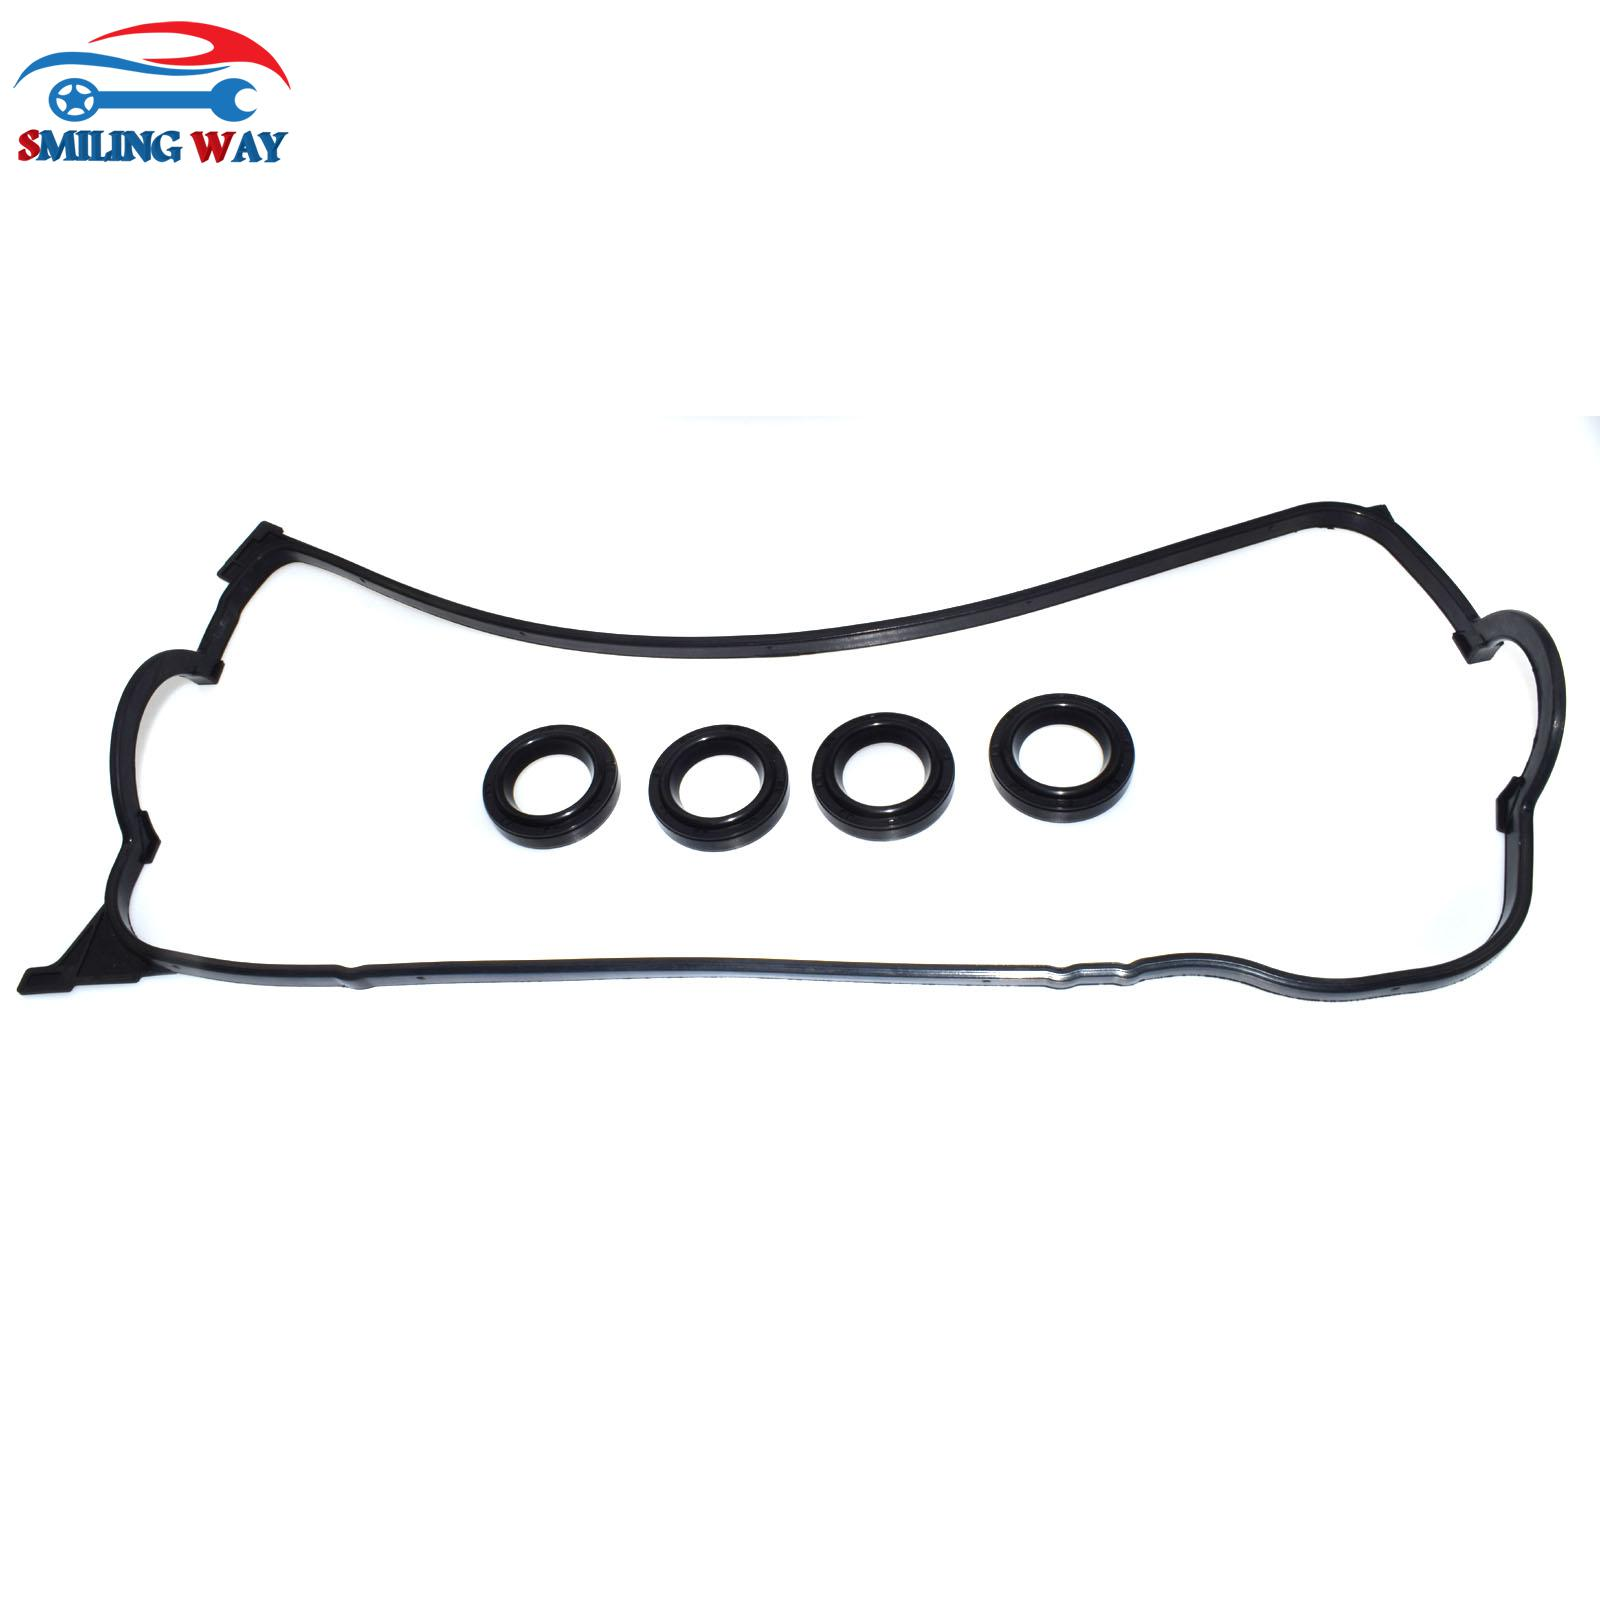 VALVE COVER GASKETs for D16Y5 96-00 1.6L HONDA CIVIC SOHC D15Z1 D16Z6 D16Y8 D16Y7